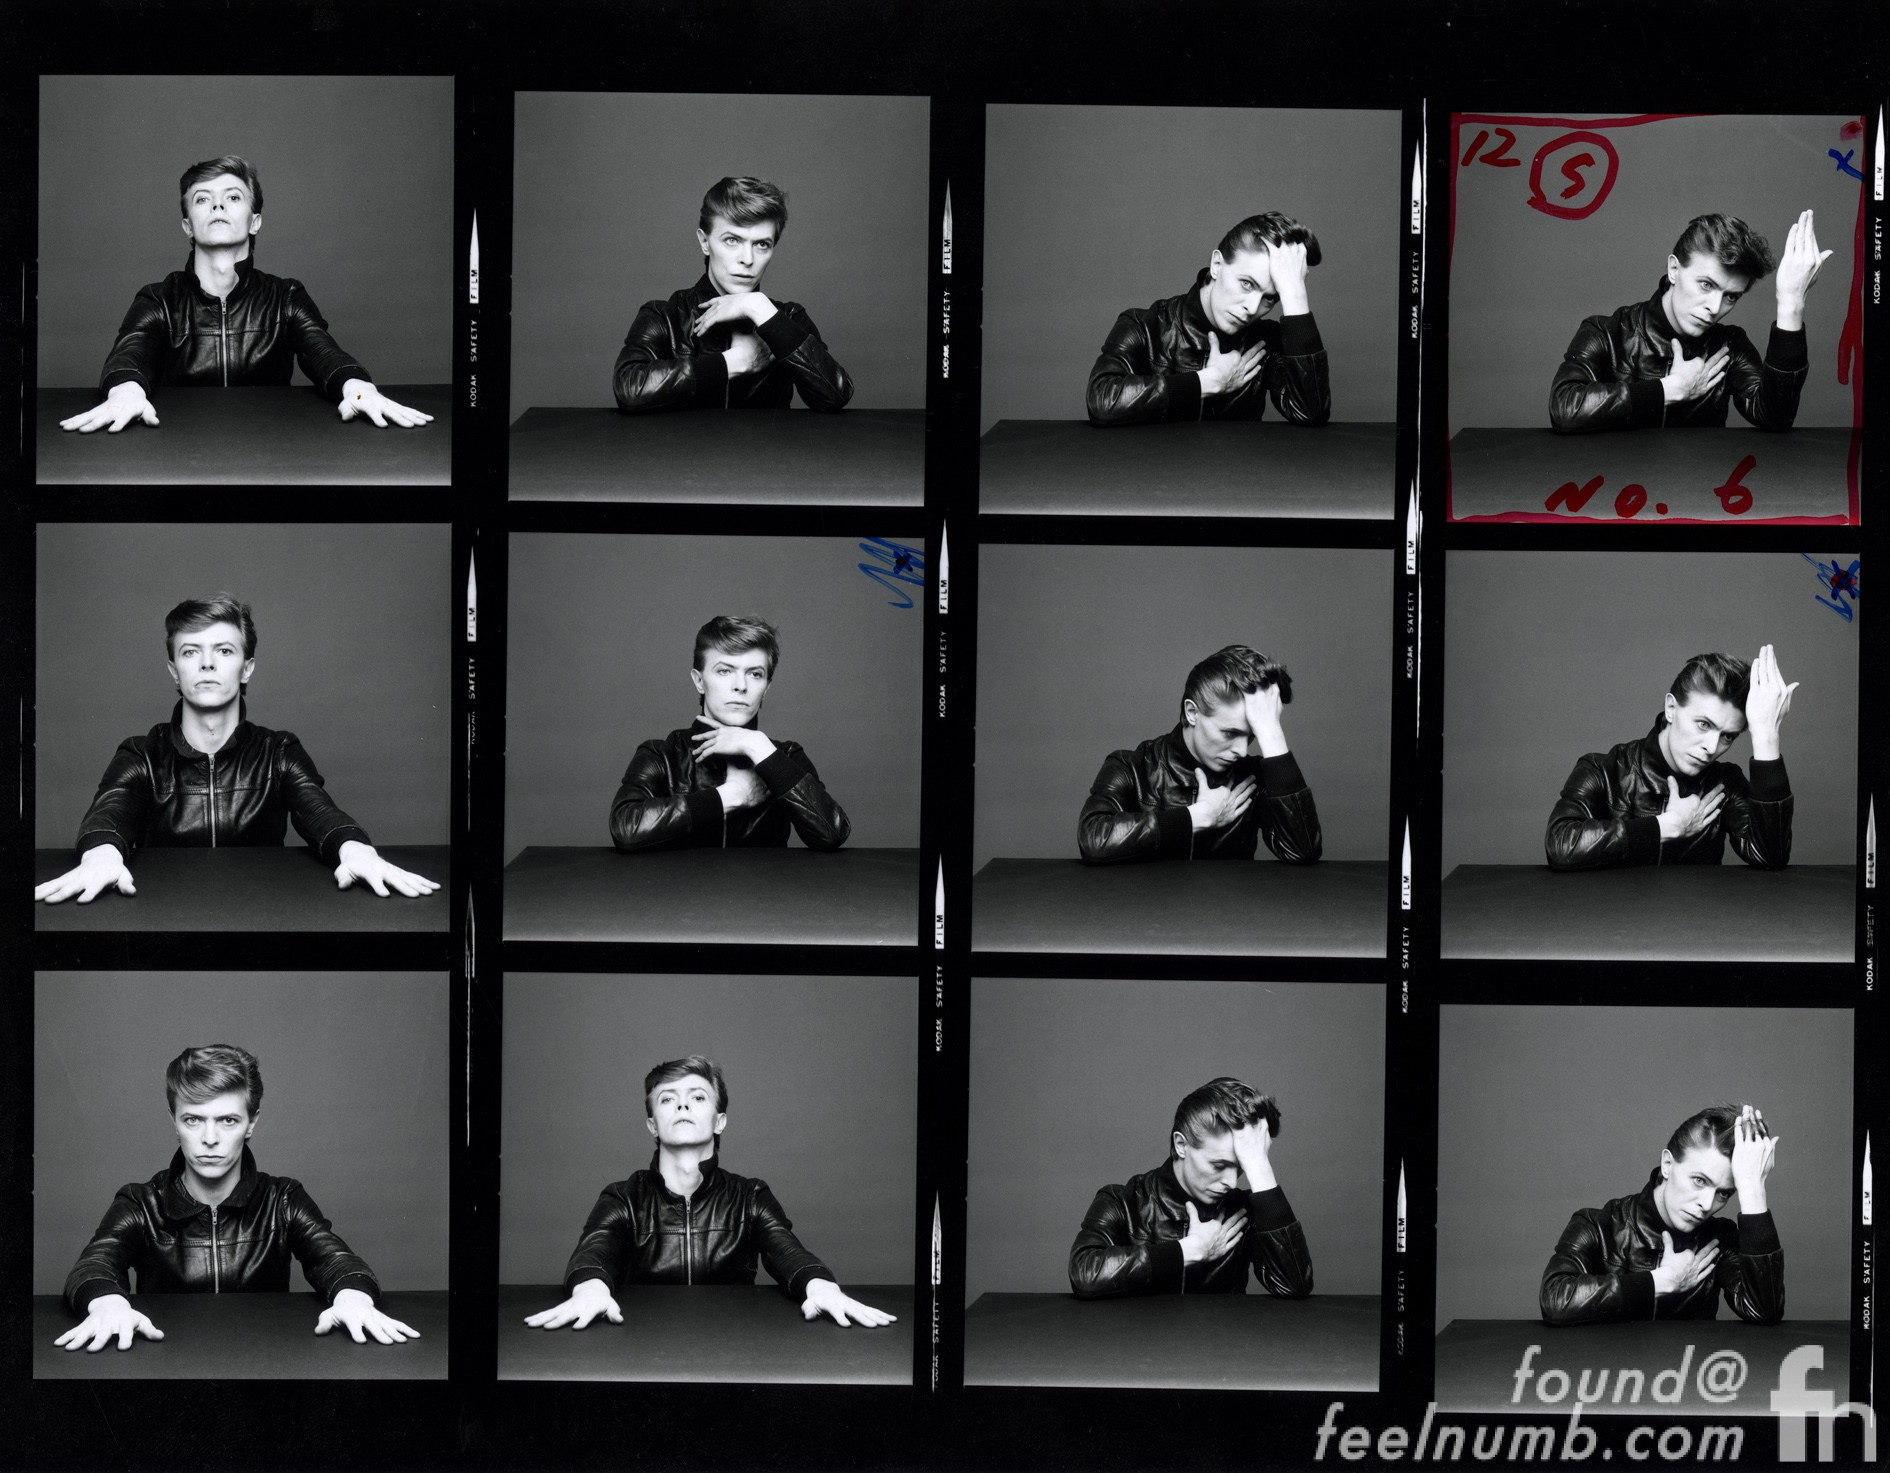 David Bowie Heroes Photshoot Contact Sheet